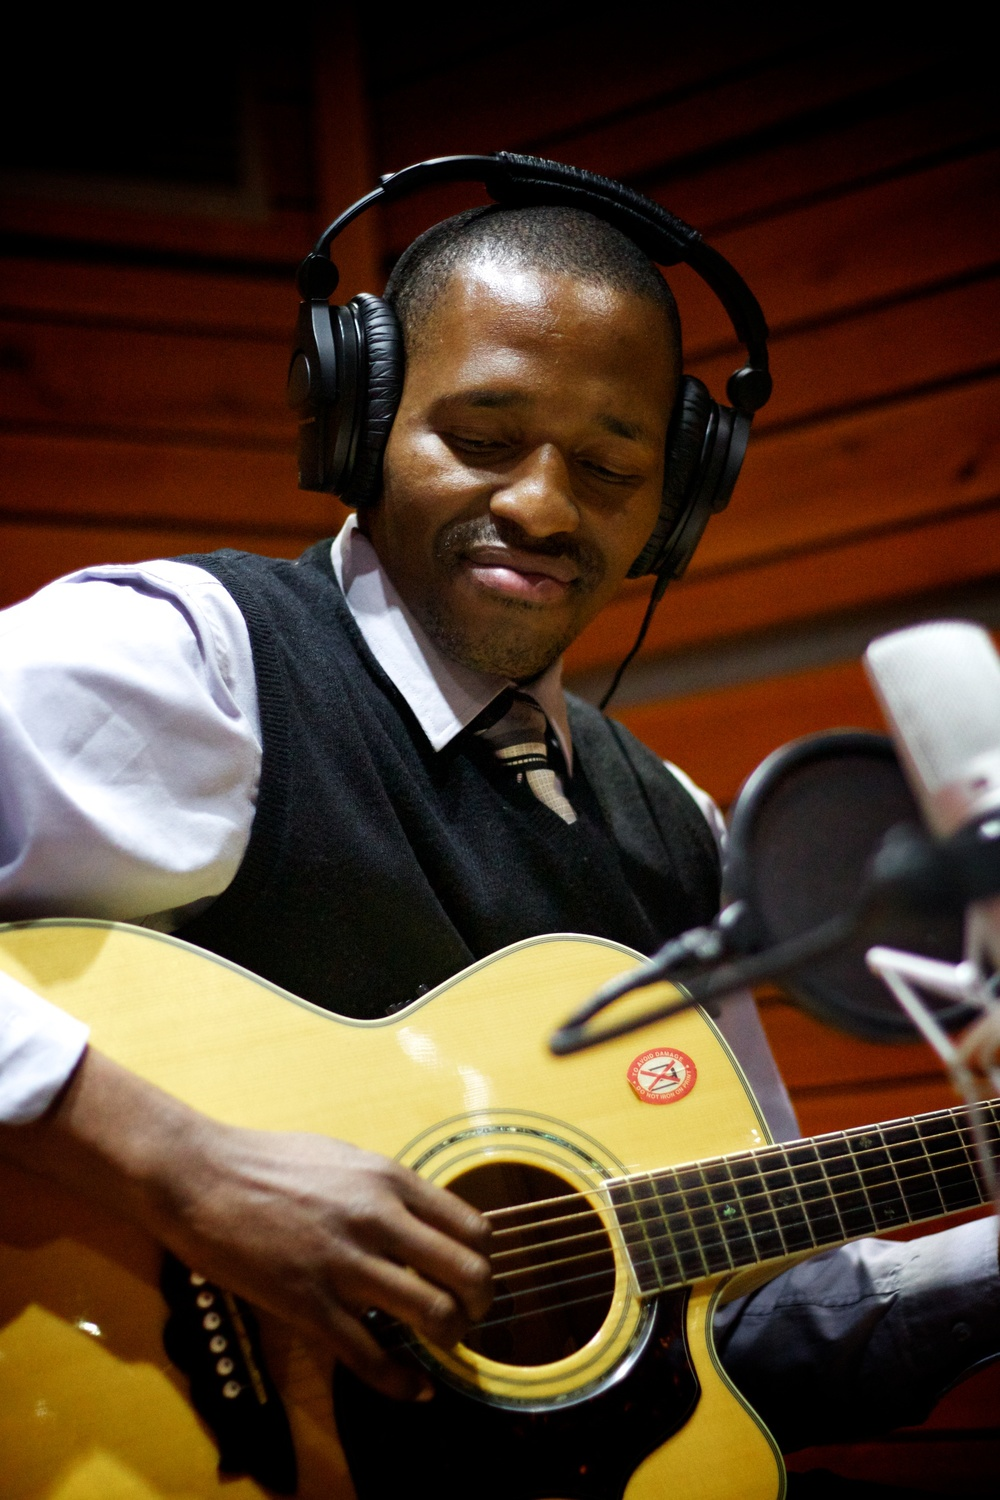 Dusty Simelane recording a track for the new Lusweti album Sitawuphumelela - Songs of Hope (1).jpg